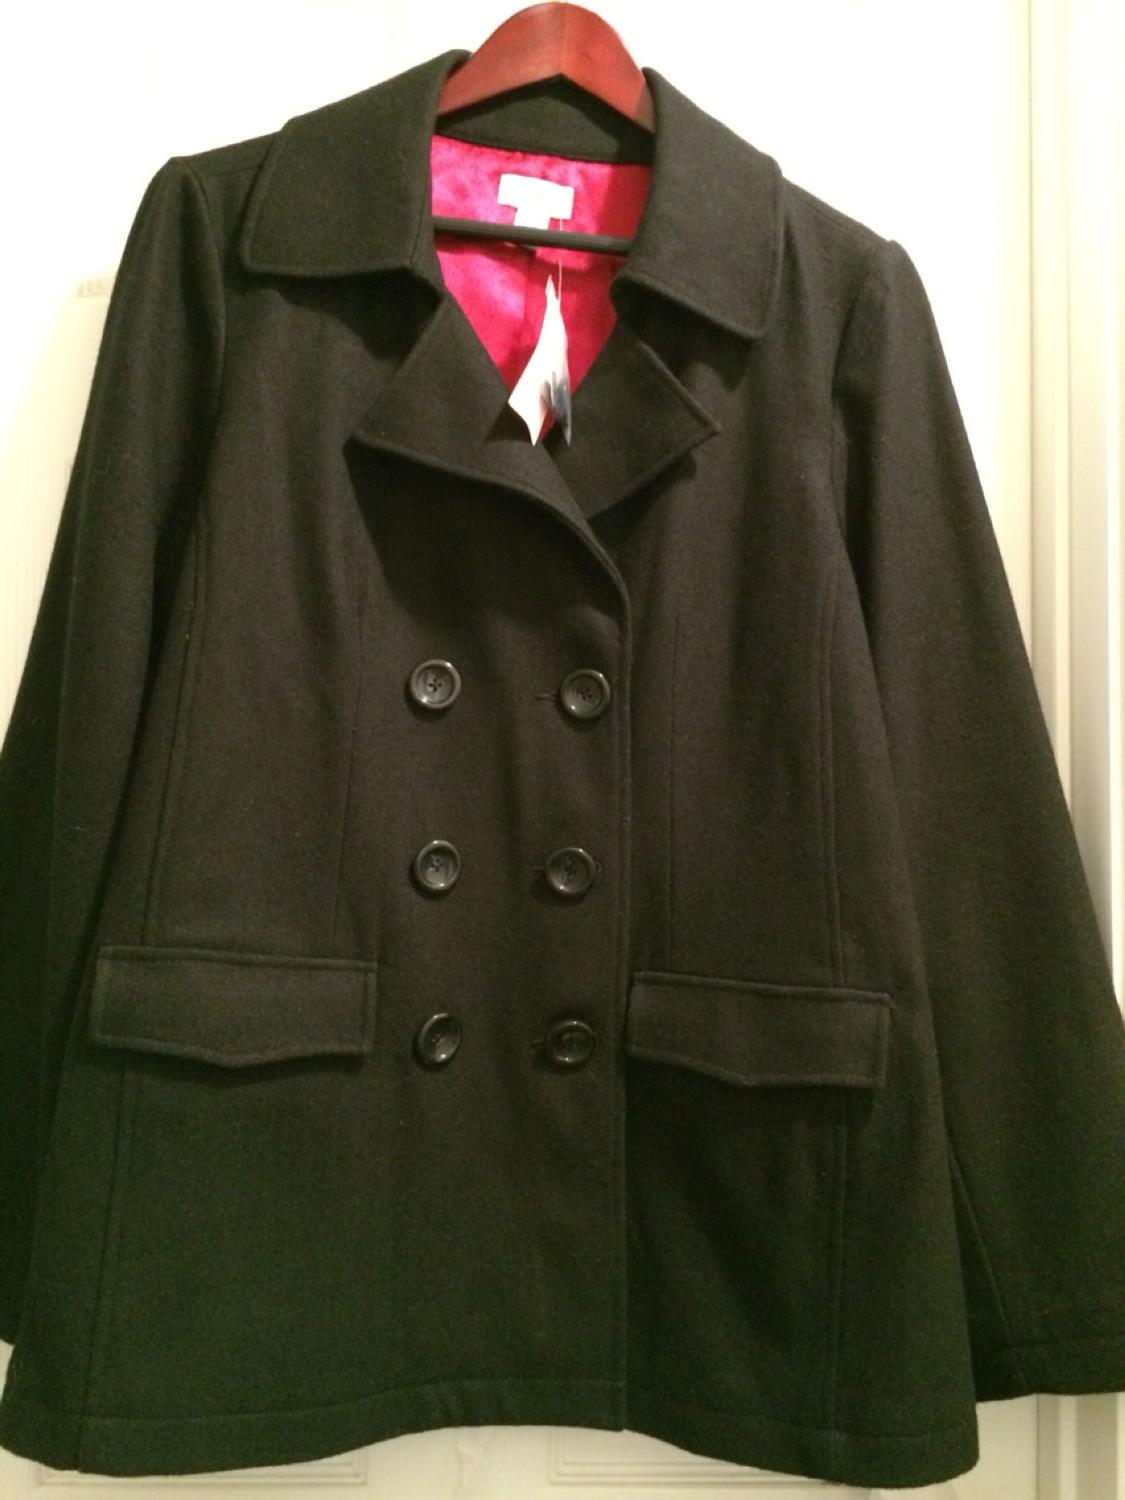 534d8e2f4969b Best Motherhood Maternity Pea Coat. New With Tags. Size Xl. Wool Blend. Org  Price Is $60. Meet At Heb Car Wash @290/barker Or Kroger On Tuckerton for  sale ...